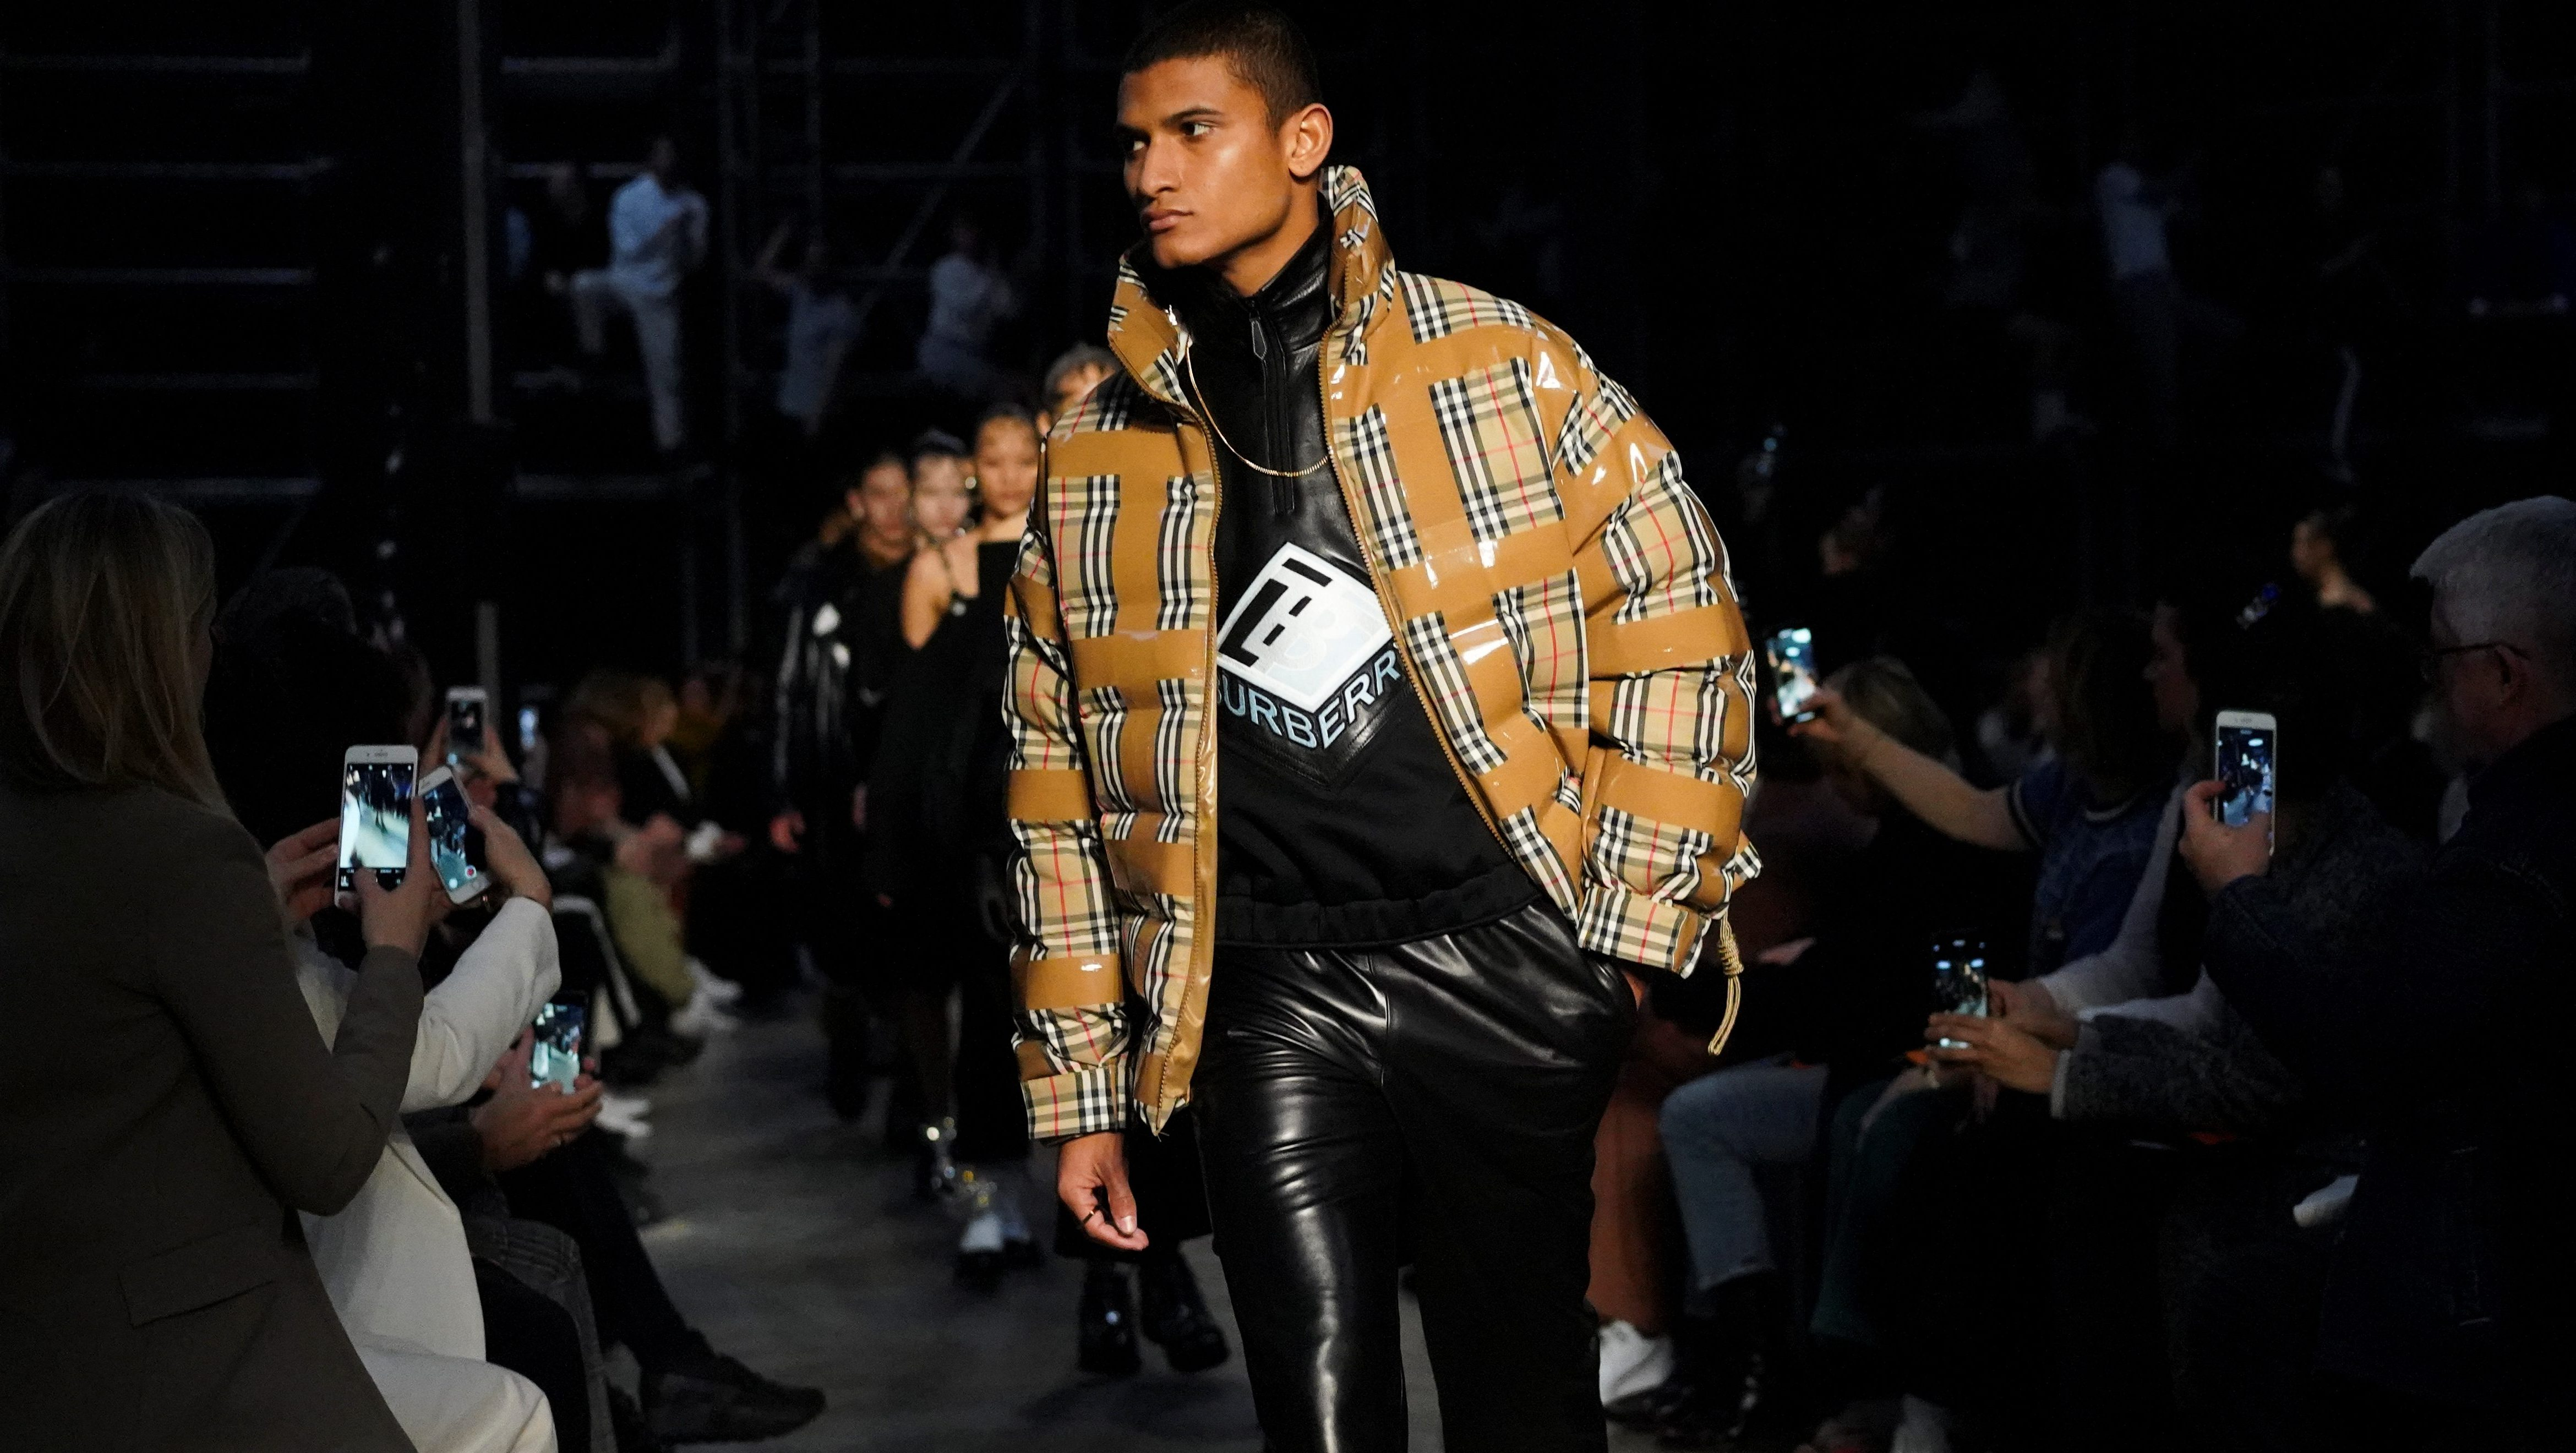 A male model walks the Burberry runway in a check puffer jacket.